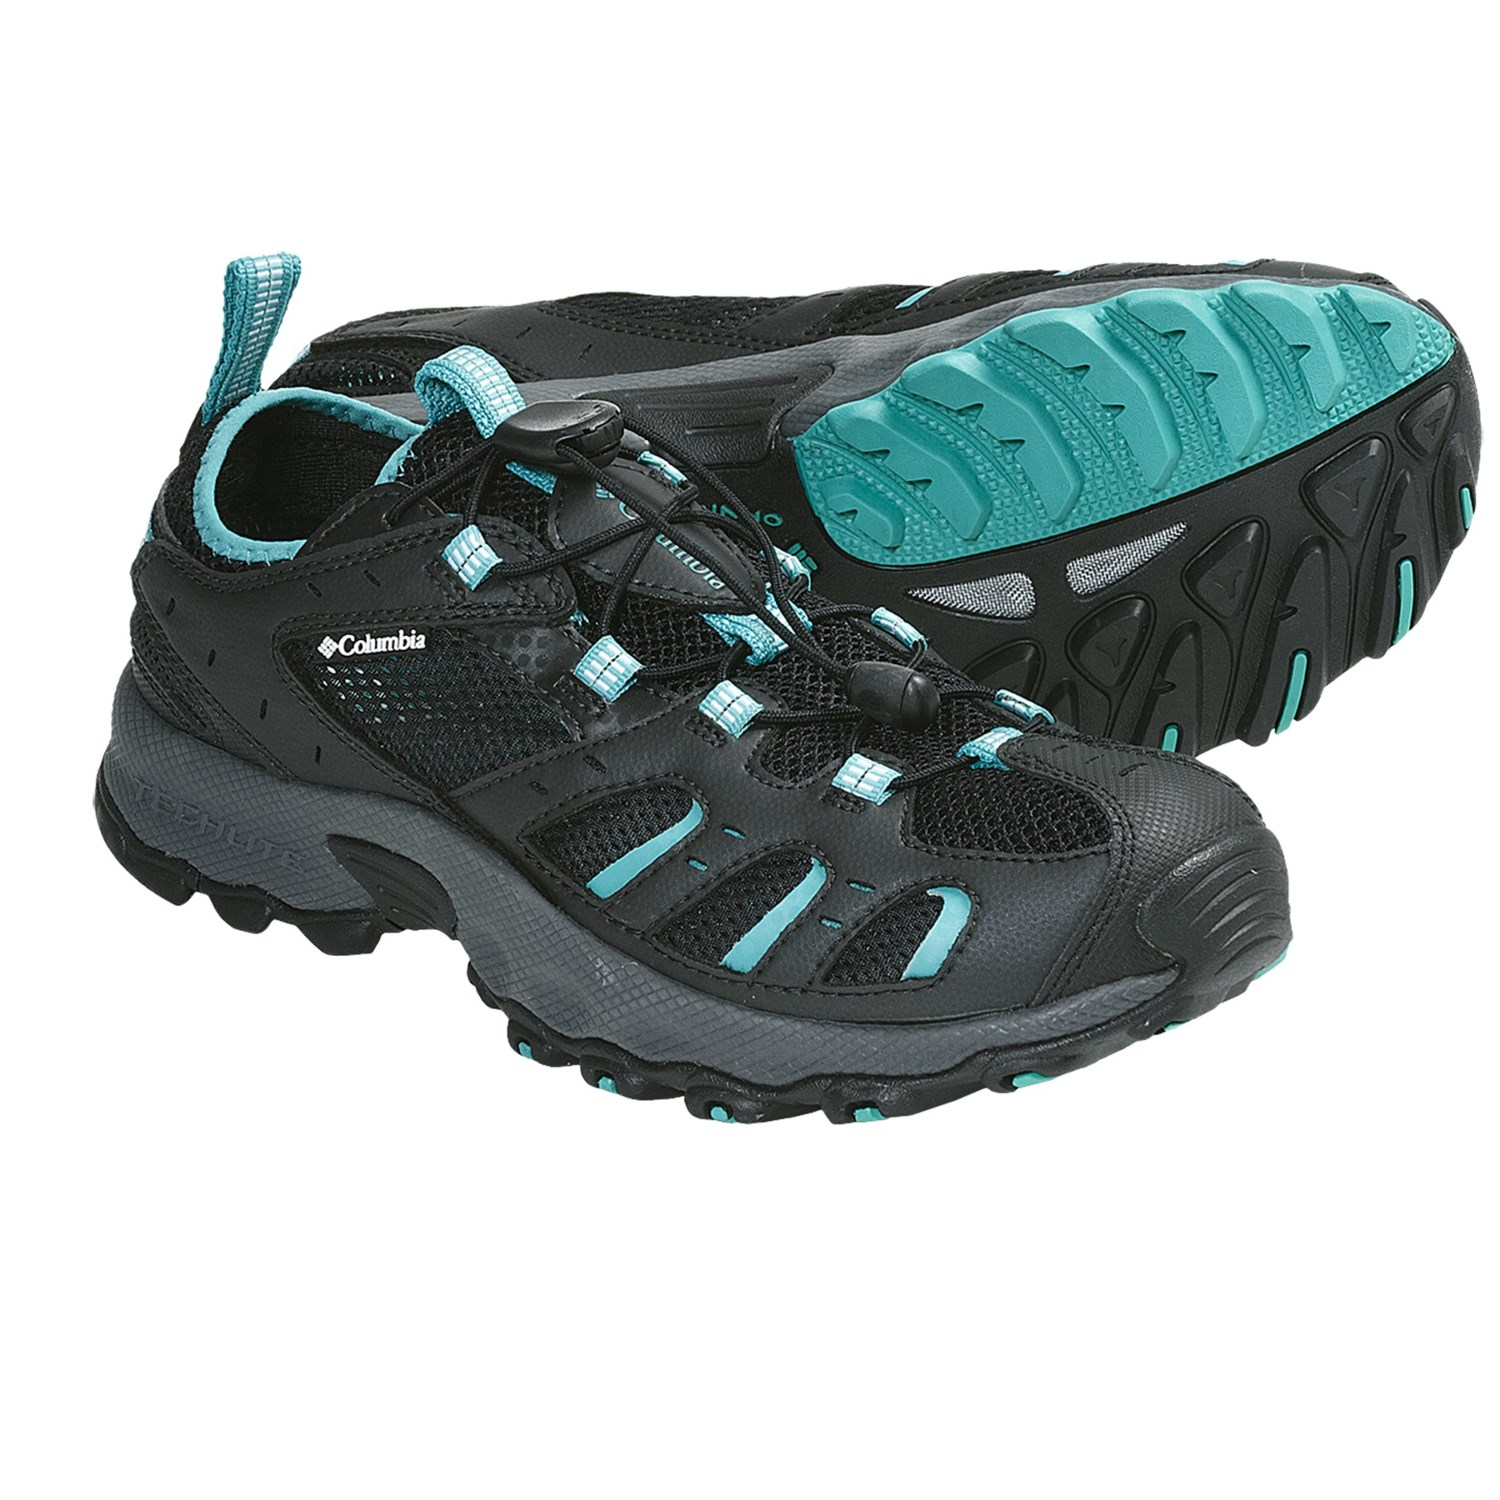 Women clothing stores Columbia womens water shoes